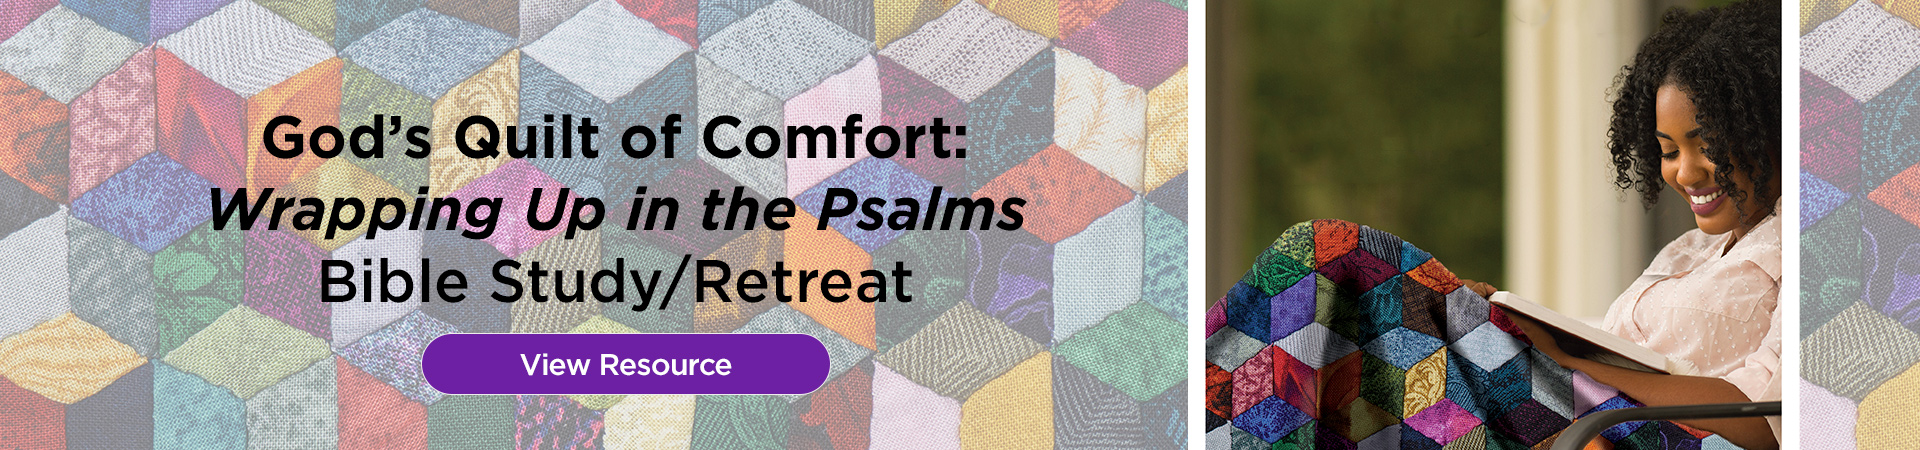 God's Quilt of Comfort: Wrapping Up in the Psalms - Bible Study/Retreat